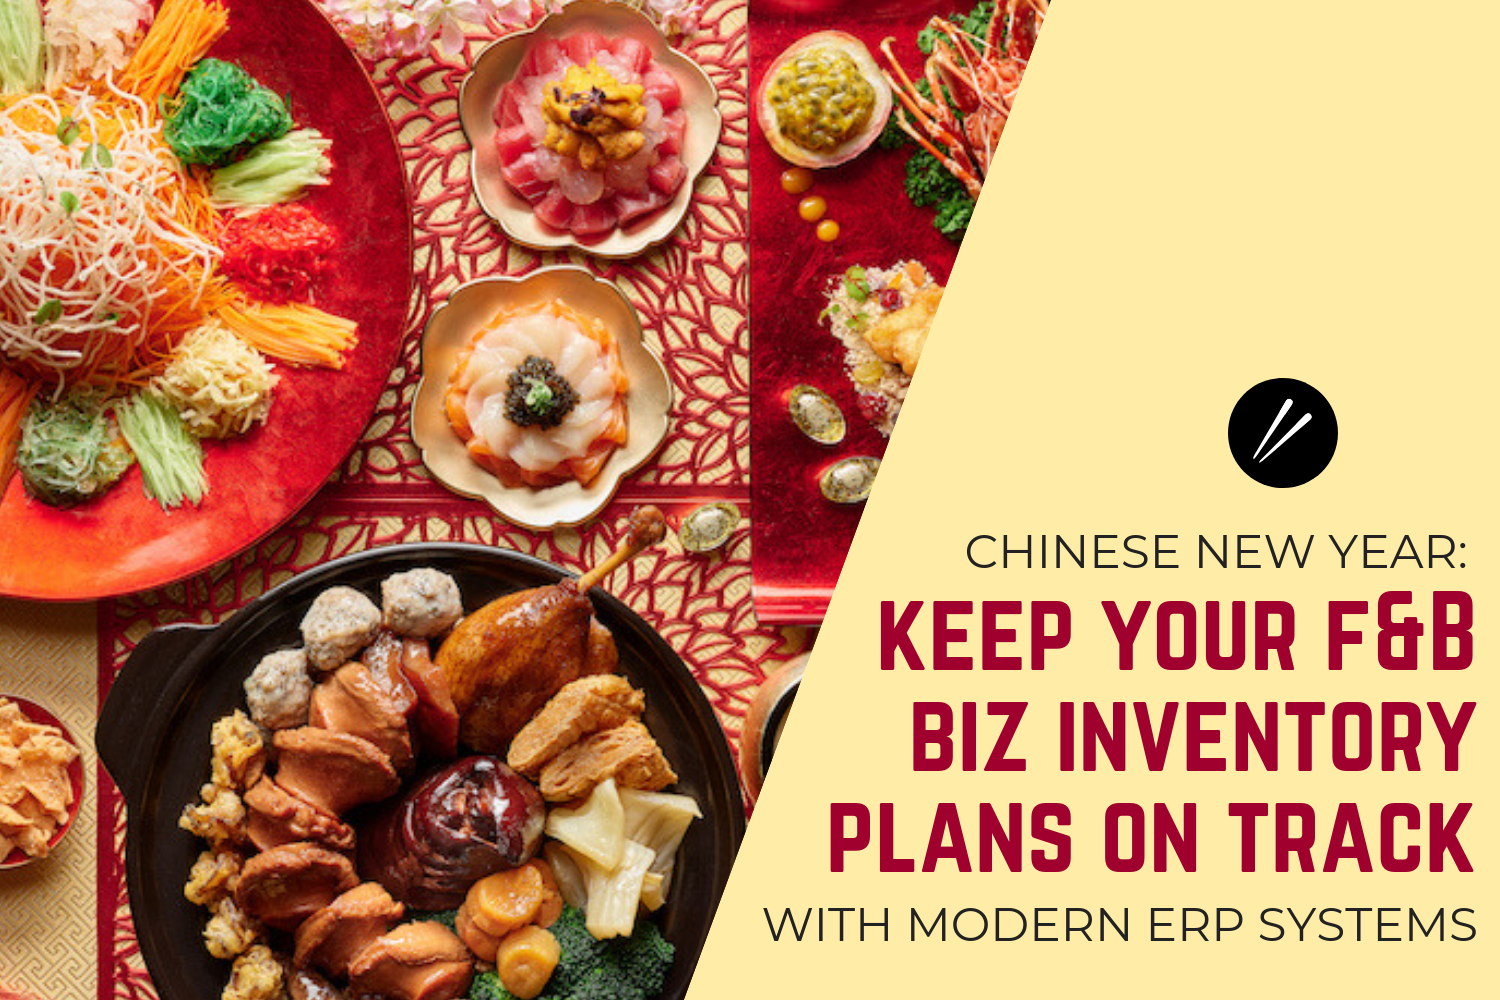 Chinese New Year Inventory Planning Tips for Food & Beverage Businesses